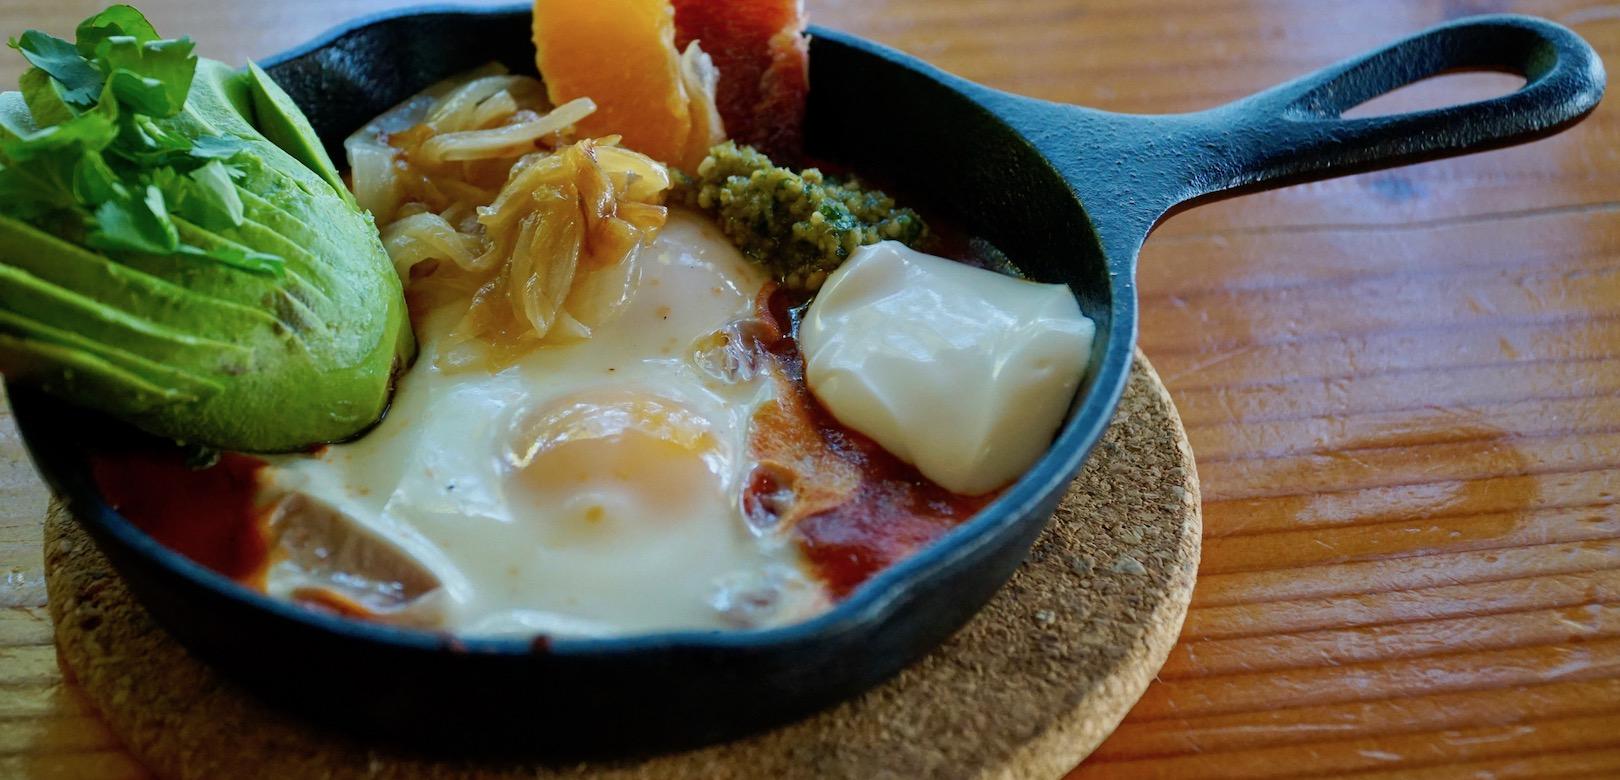 A mexican styled skillet with baked eggs and vegetables